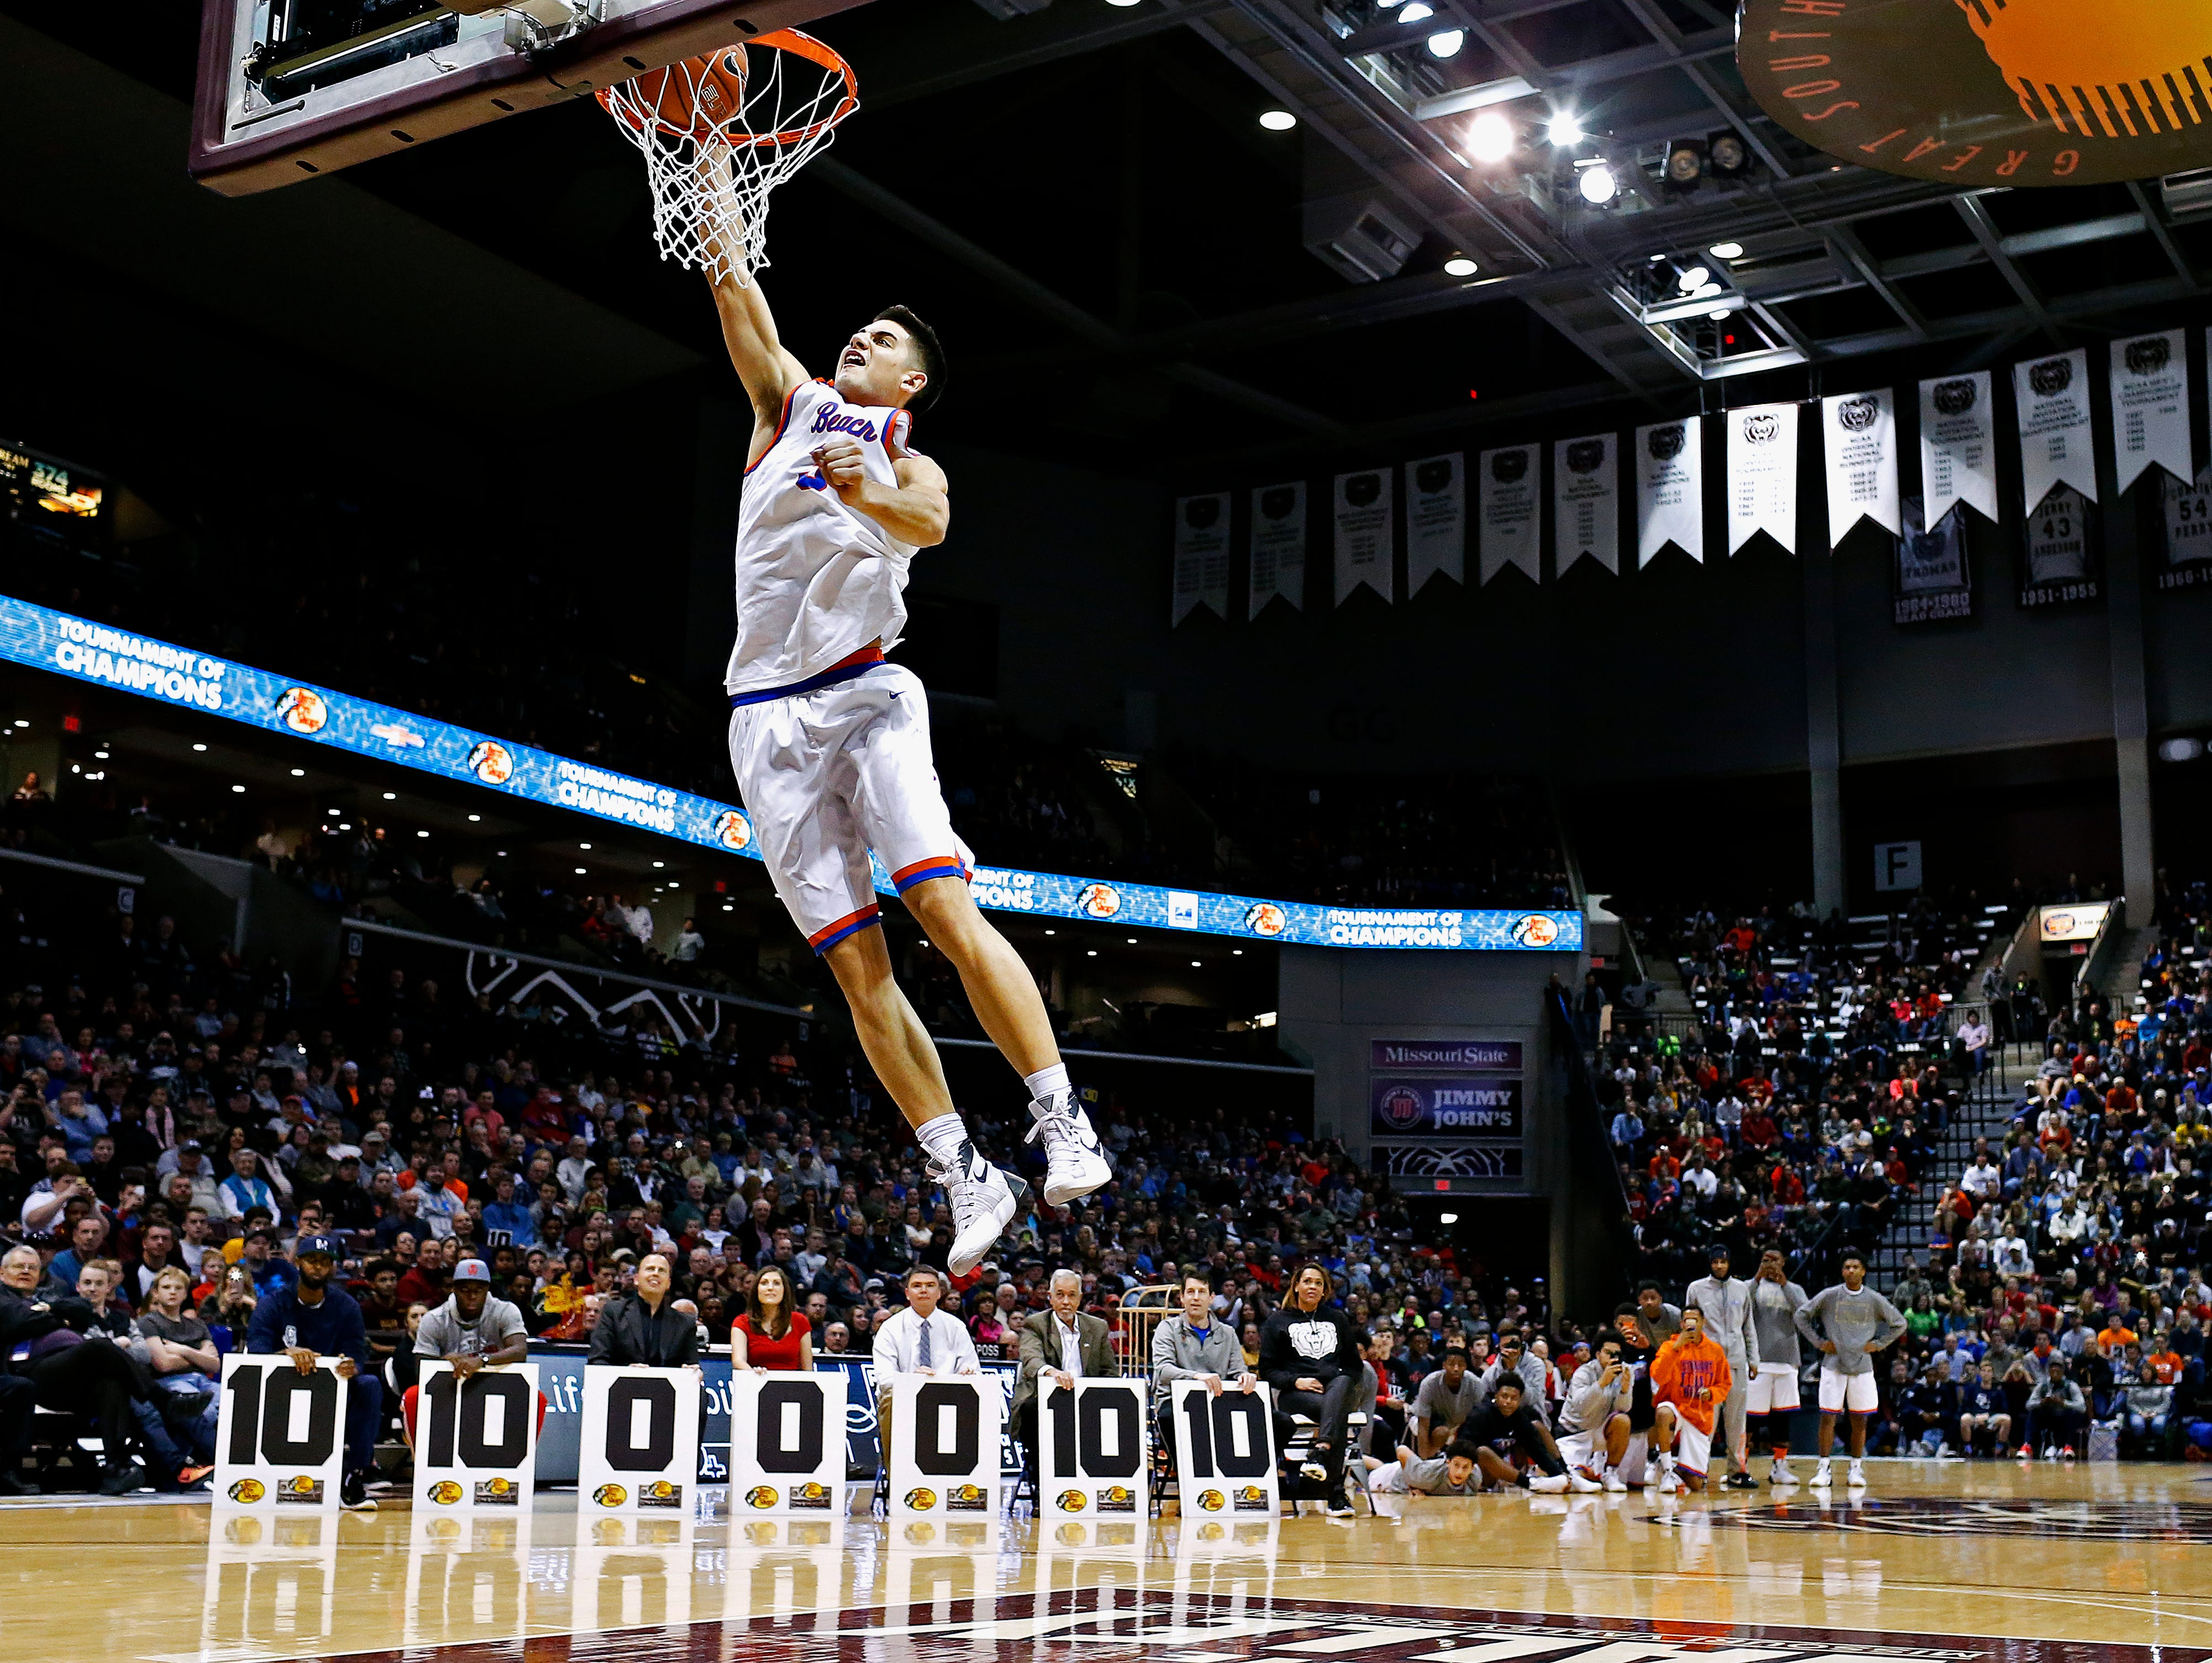 Rainier Beach High School (Seattle, Wa.) guard Sam Cunliffe (3) dunks during the dunk contest portion of the 2016 Tournament of Champions at JQH Arena in Springfield, Mo. on Jan. 15, 2015. Bishop Gorman High School (Las Vegas, Nev.) guard Christian Popoola Jr. won first place in the contest.